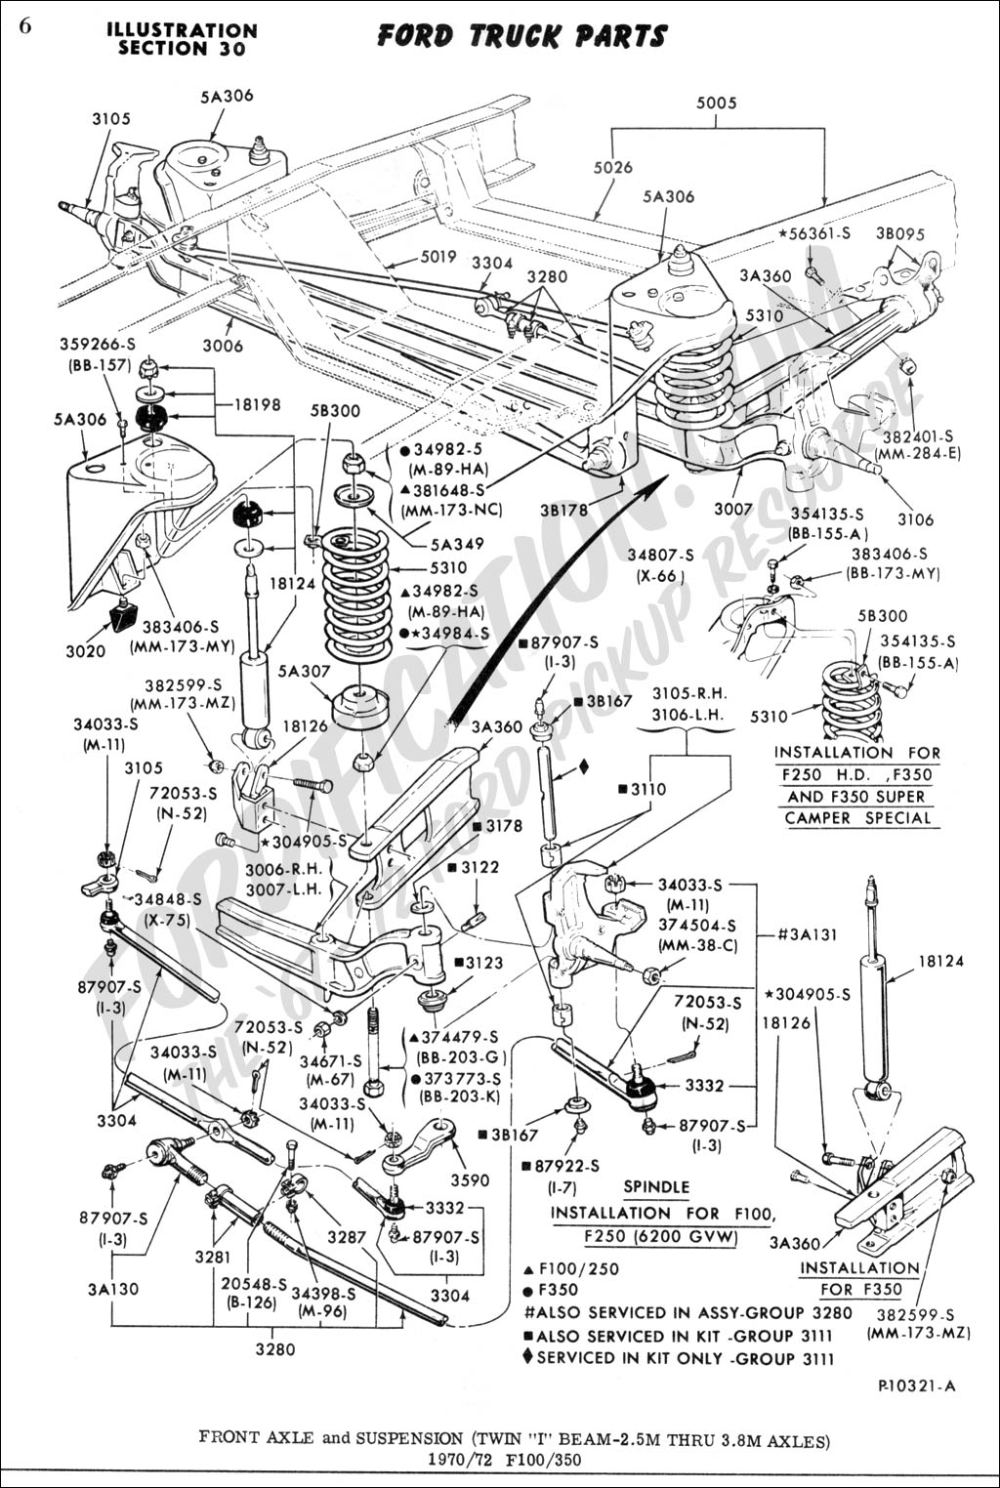 medium resolution of 2002 ford f250 steering diagram wiring diagram inside 2013 ford f350 steering diagram 2001 f350 steering